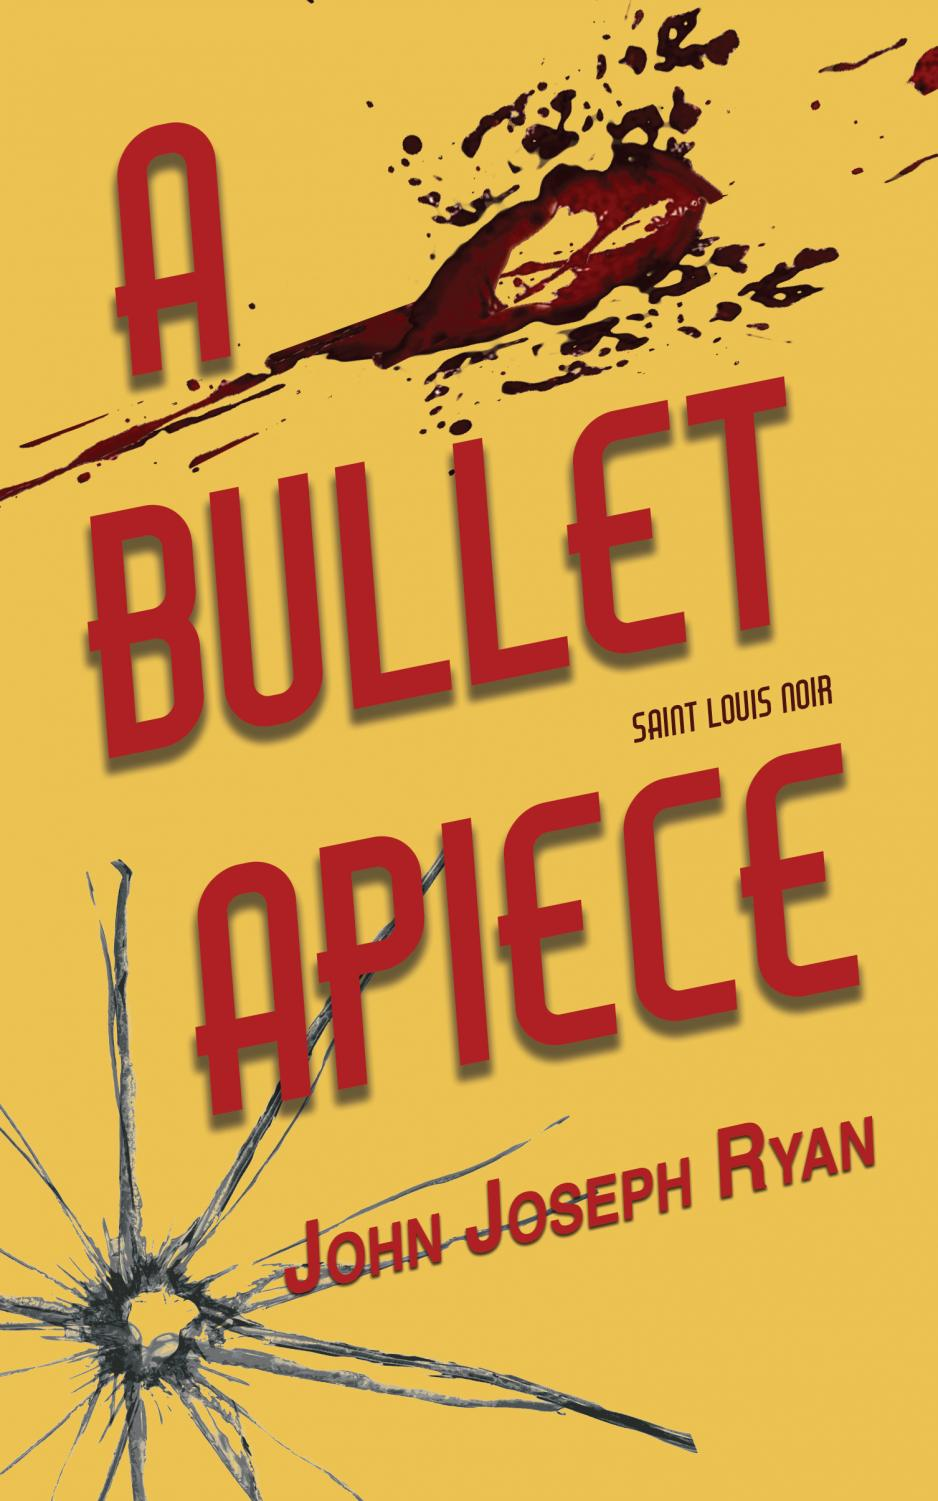 CHS English teacher John Ryan's first novel, A Bullet Apiece (Image from public domain).